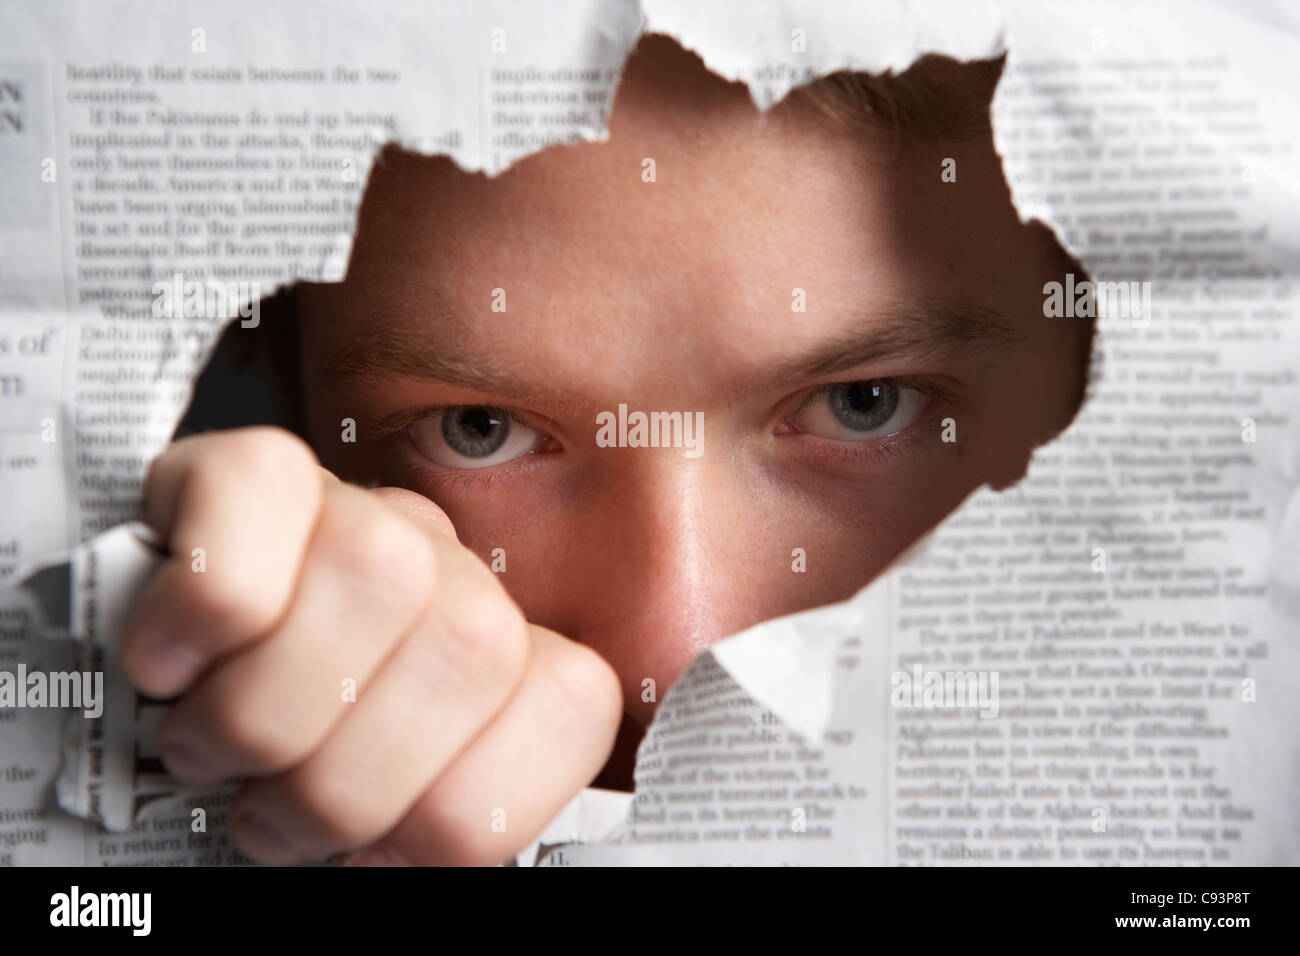 Man looking through hole in newspaper - Stock Image